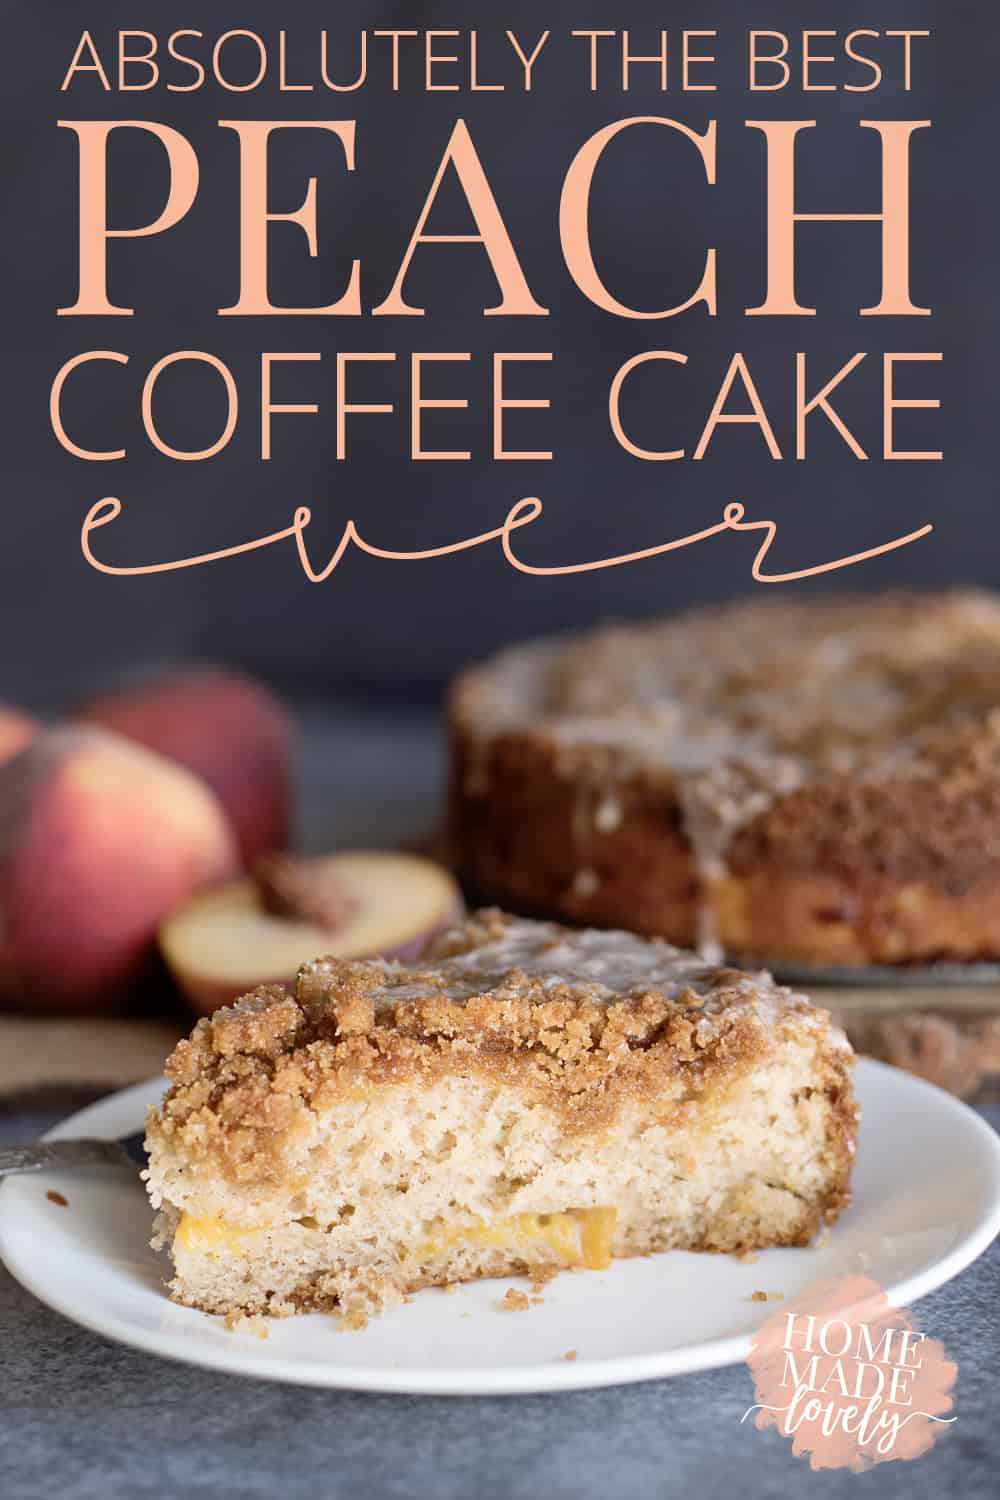 Although it's not inherently a fall dessert, this homemade peach coffee cake is absolutely the best ever! Plus, technically the colors are still very autumnal!